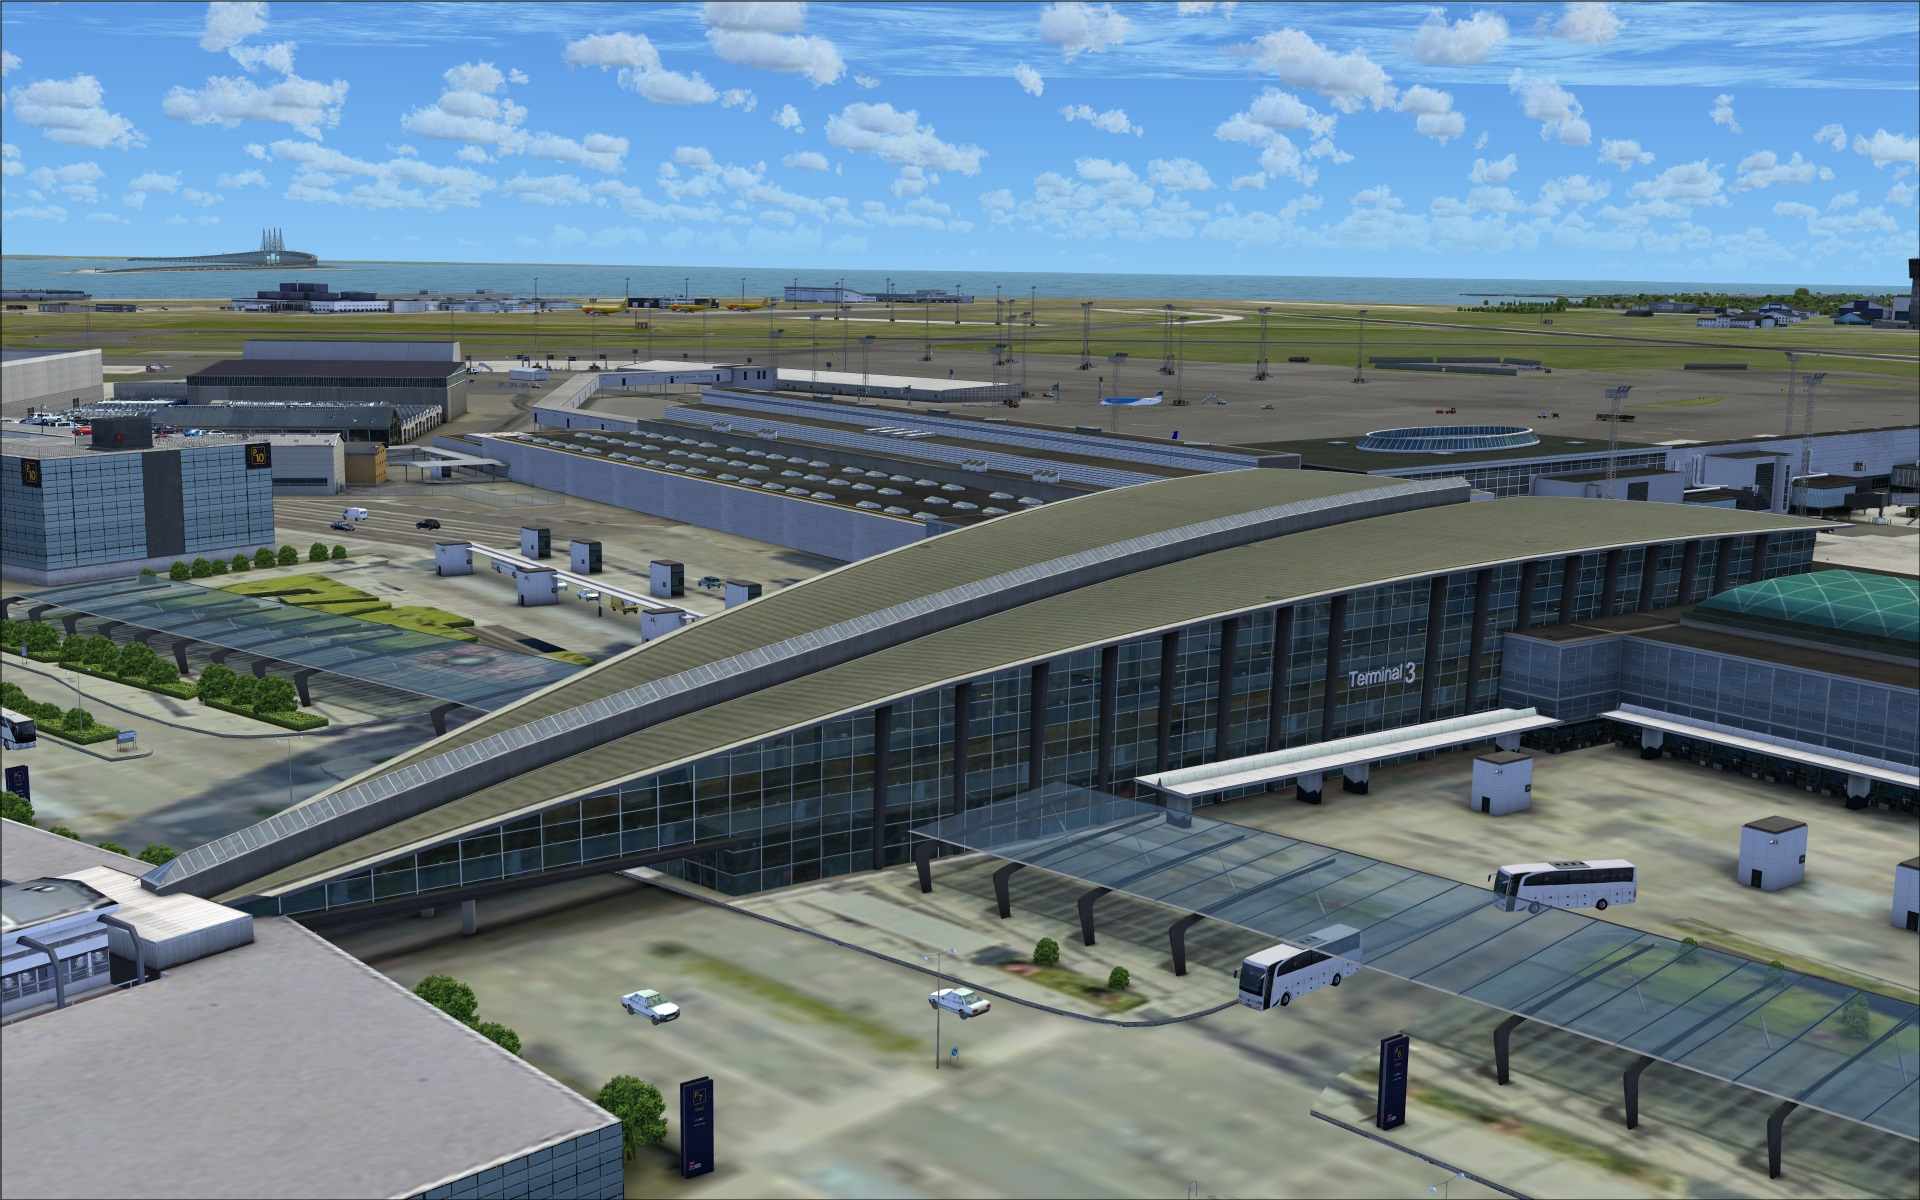 Review of flytampa copenhagen for fsx p3d the latest release by flytampa is copenhagen - Copenhagen airport to port ...